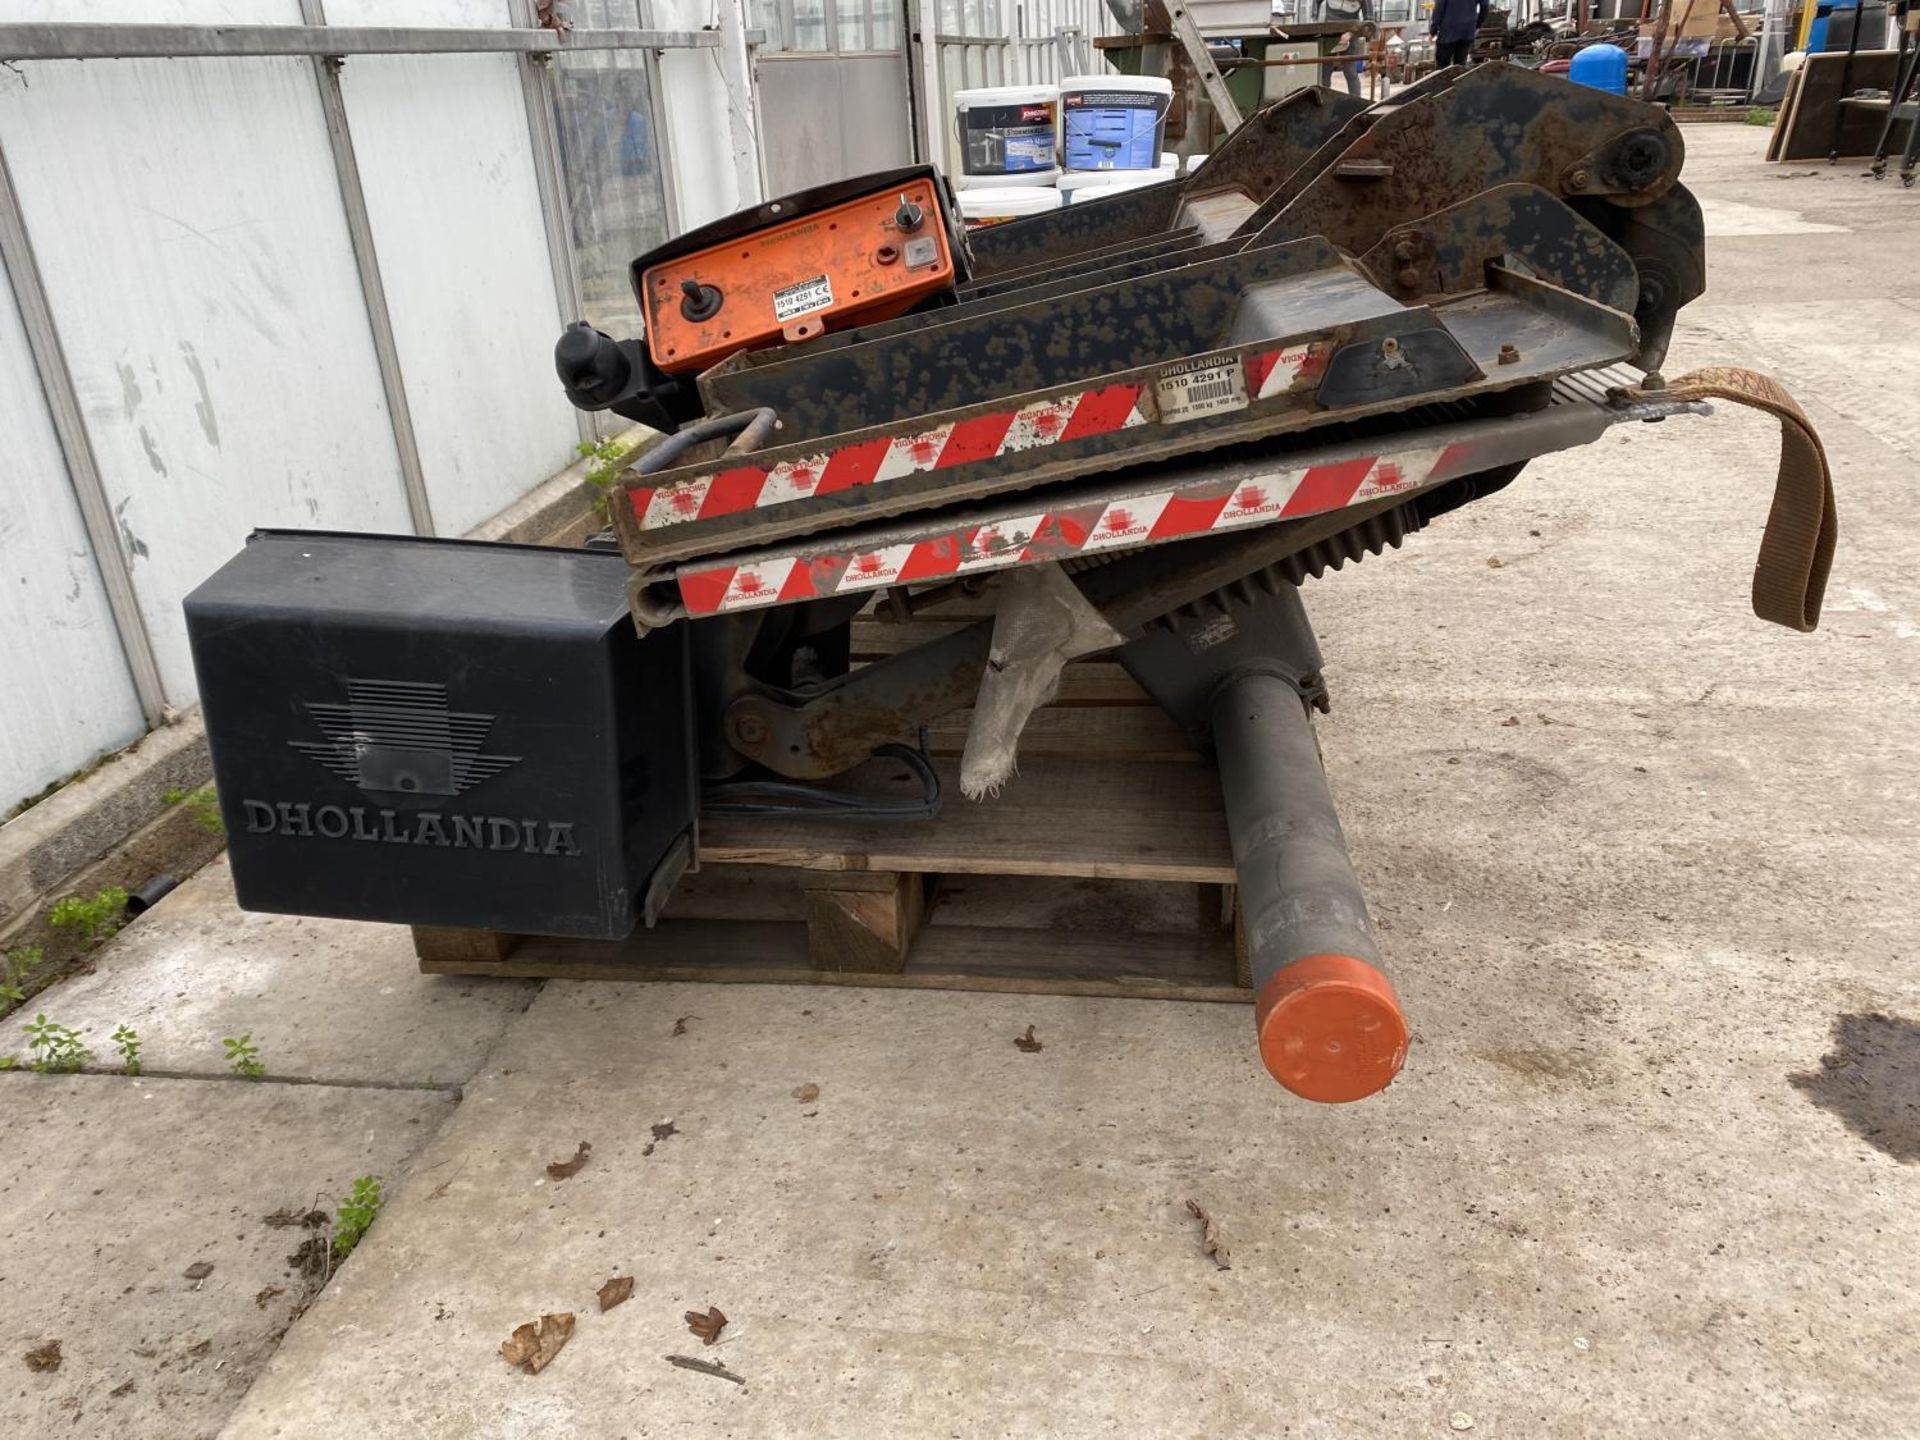 A D.HOLLANDIA TAIL LIFT 1500 KG. BELIEVED WORKING NO WARRANTY - NO VAT - Image 3 of 6